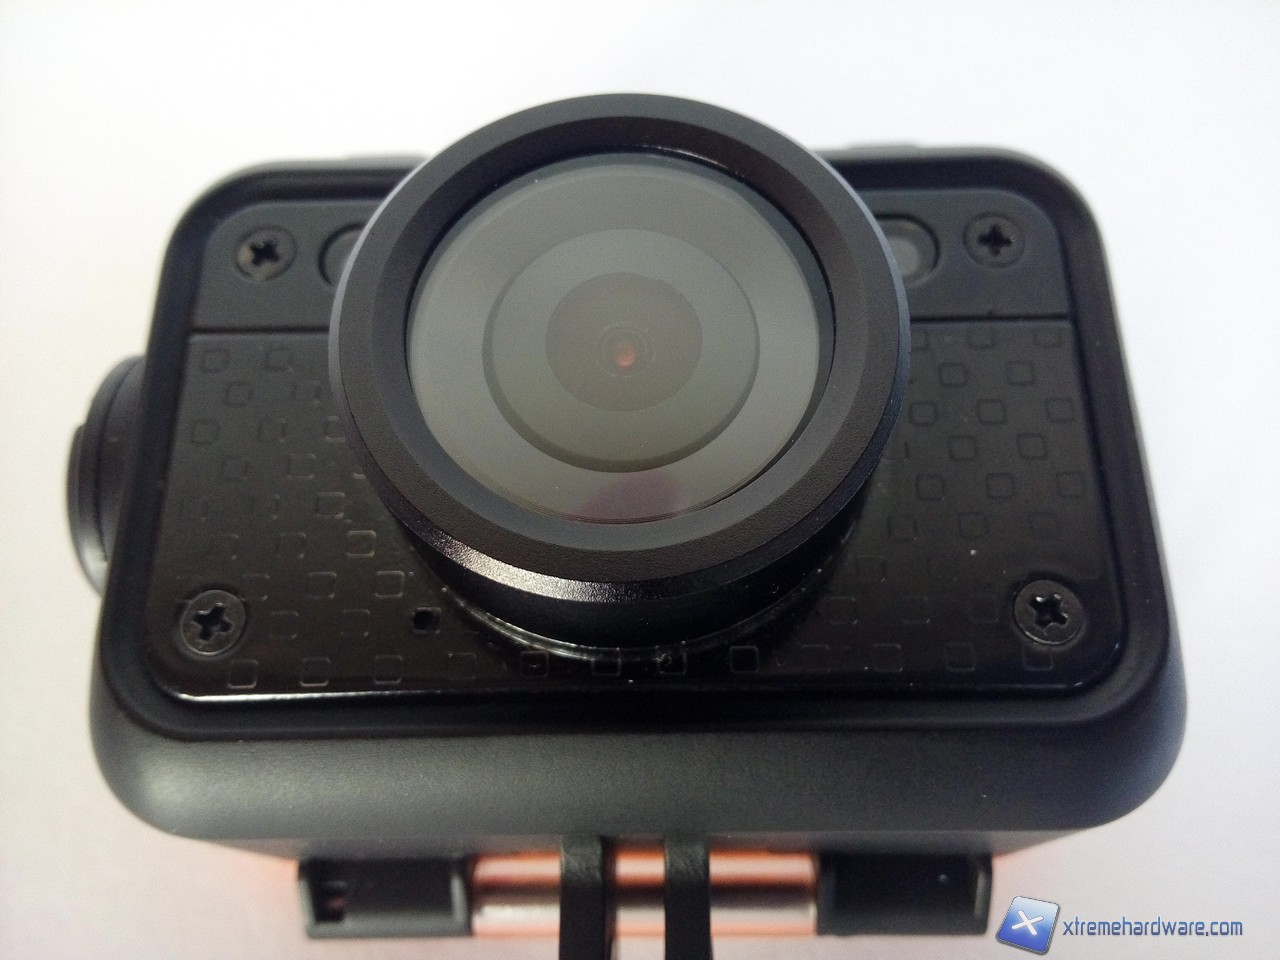 SOOCOO S60, action cam economica al top